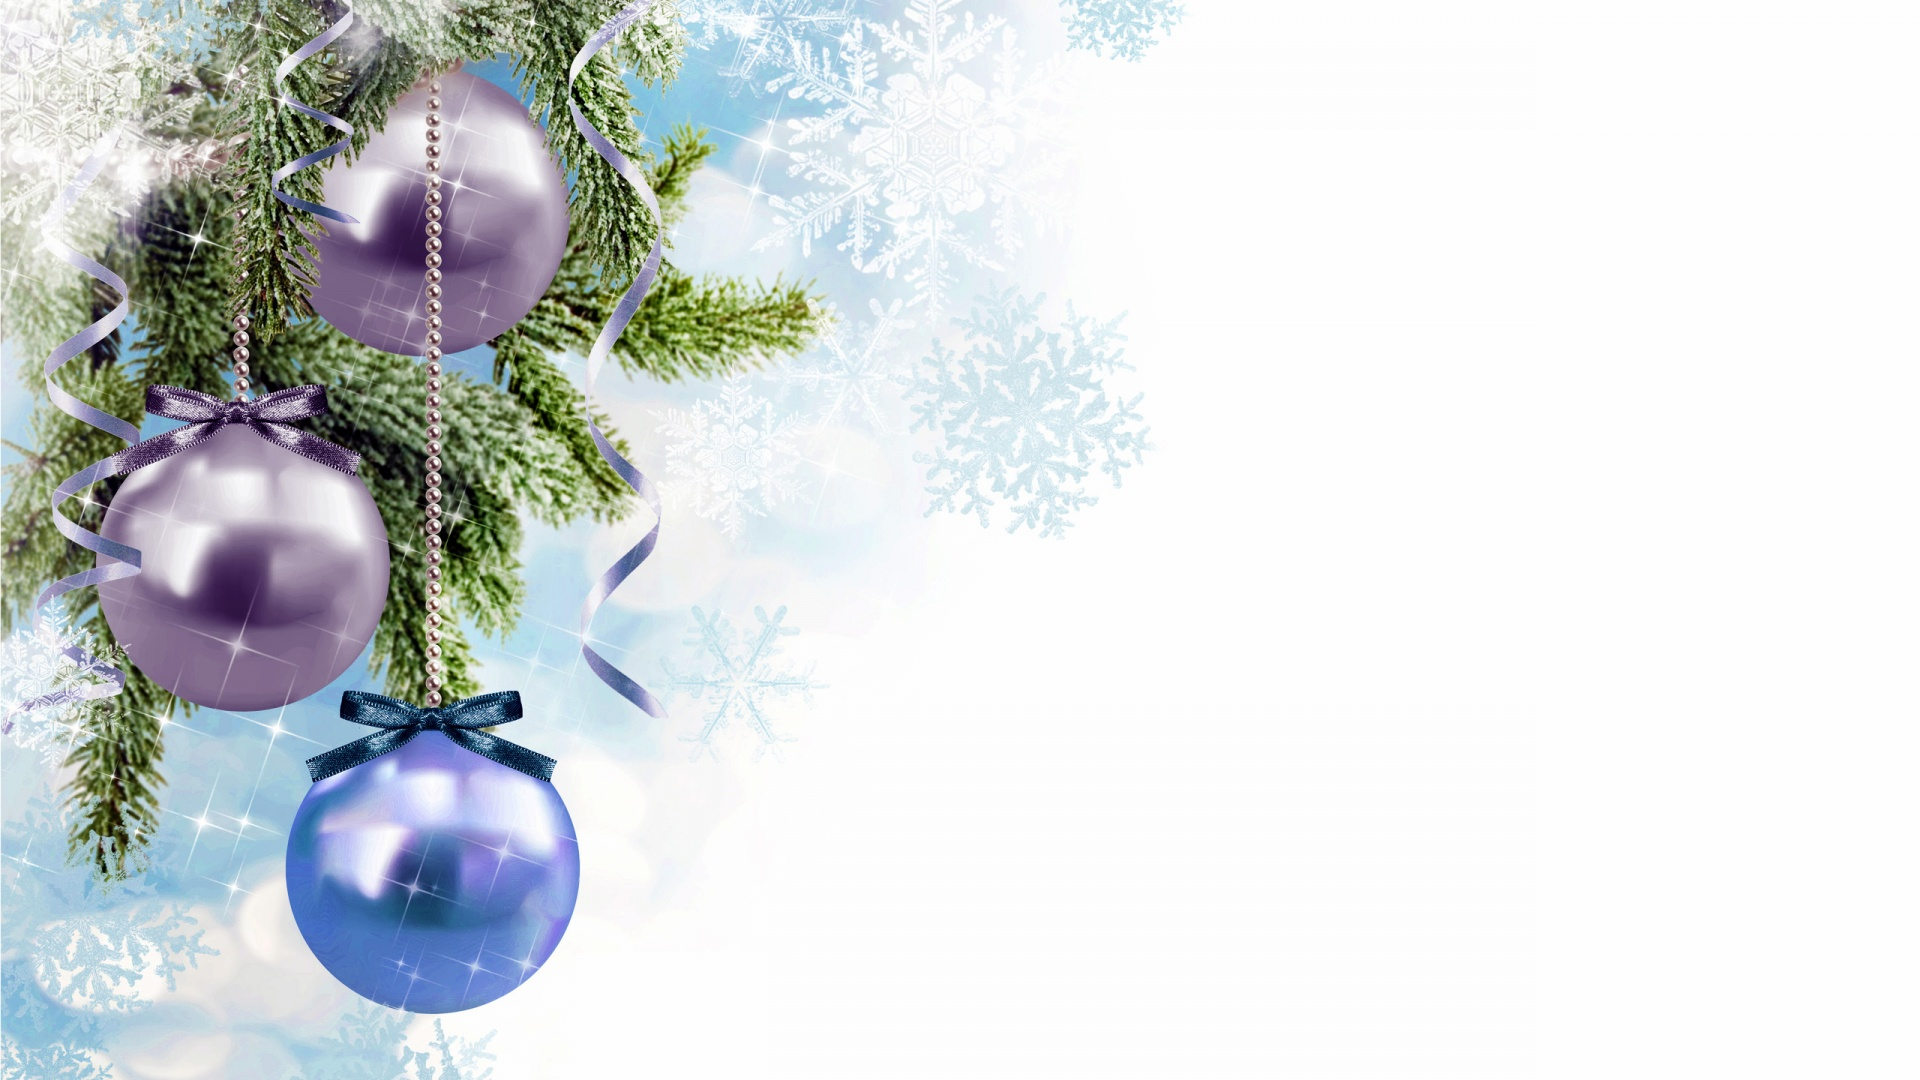 Christmas Wallpaper 47842 1920x1080 Px Hdwallsource Com